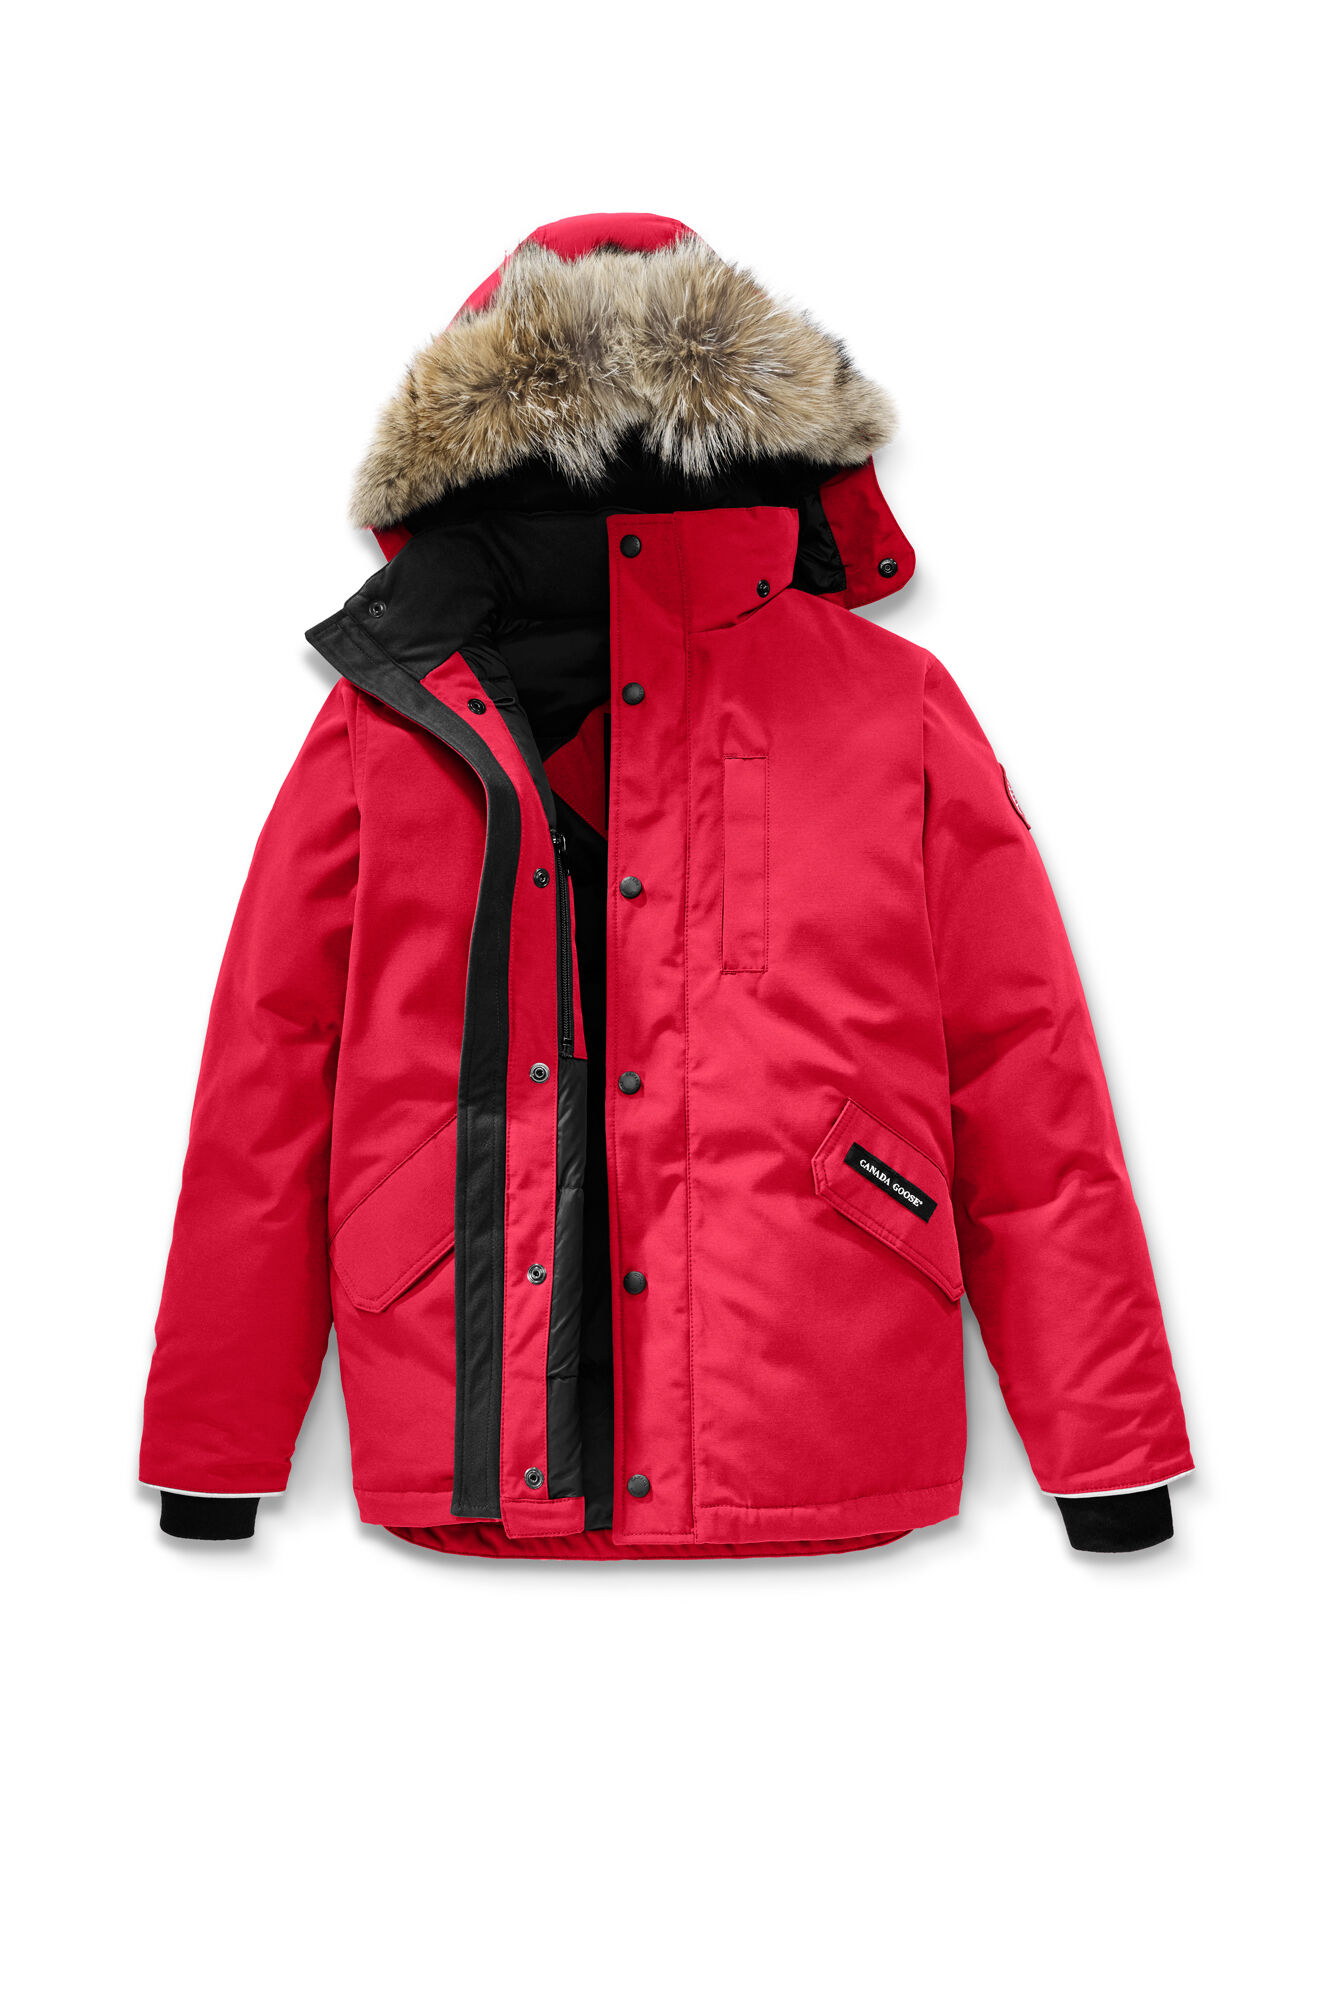 canada goose youth jacket price